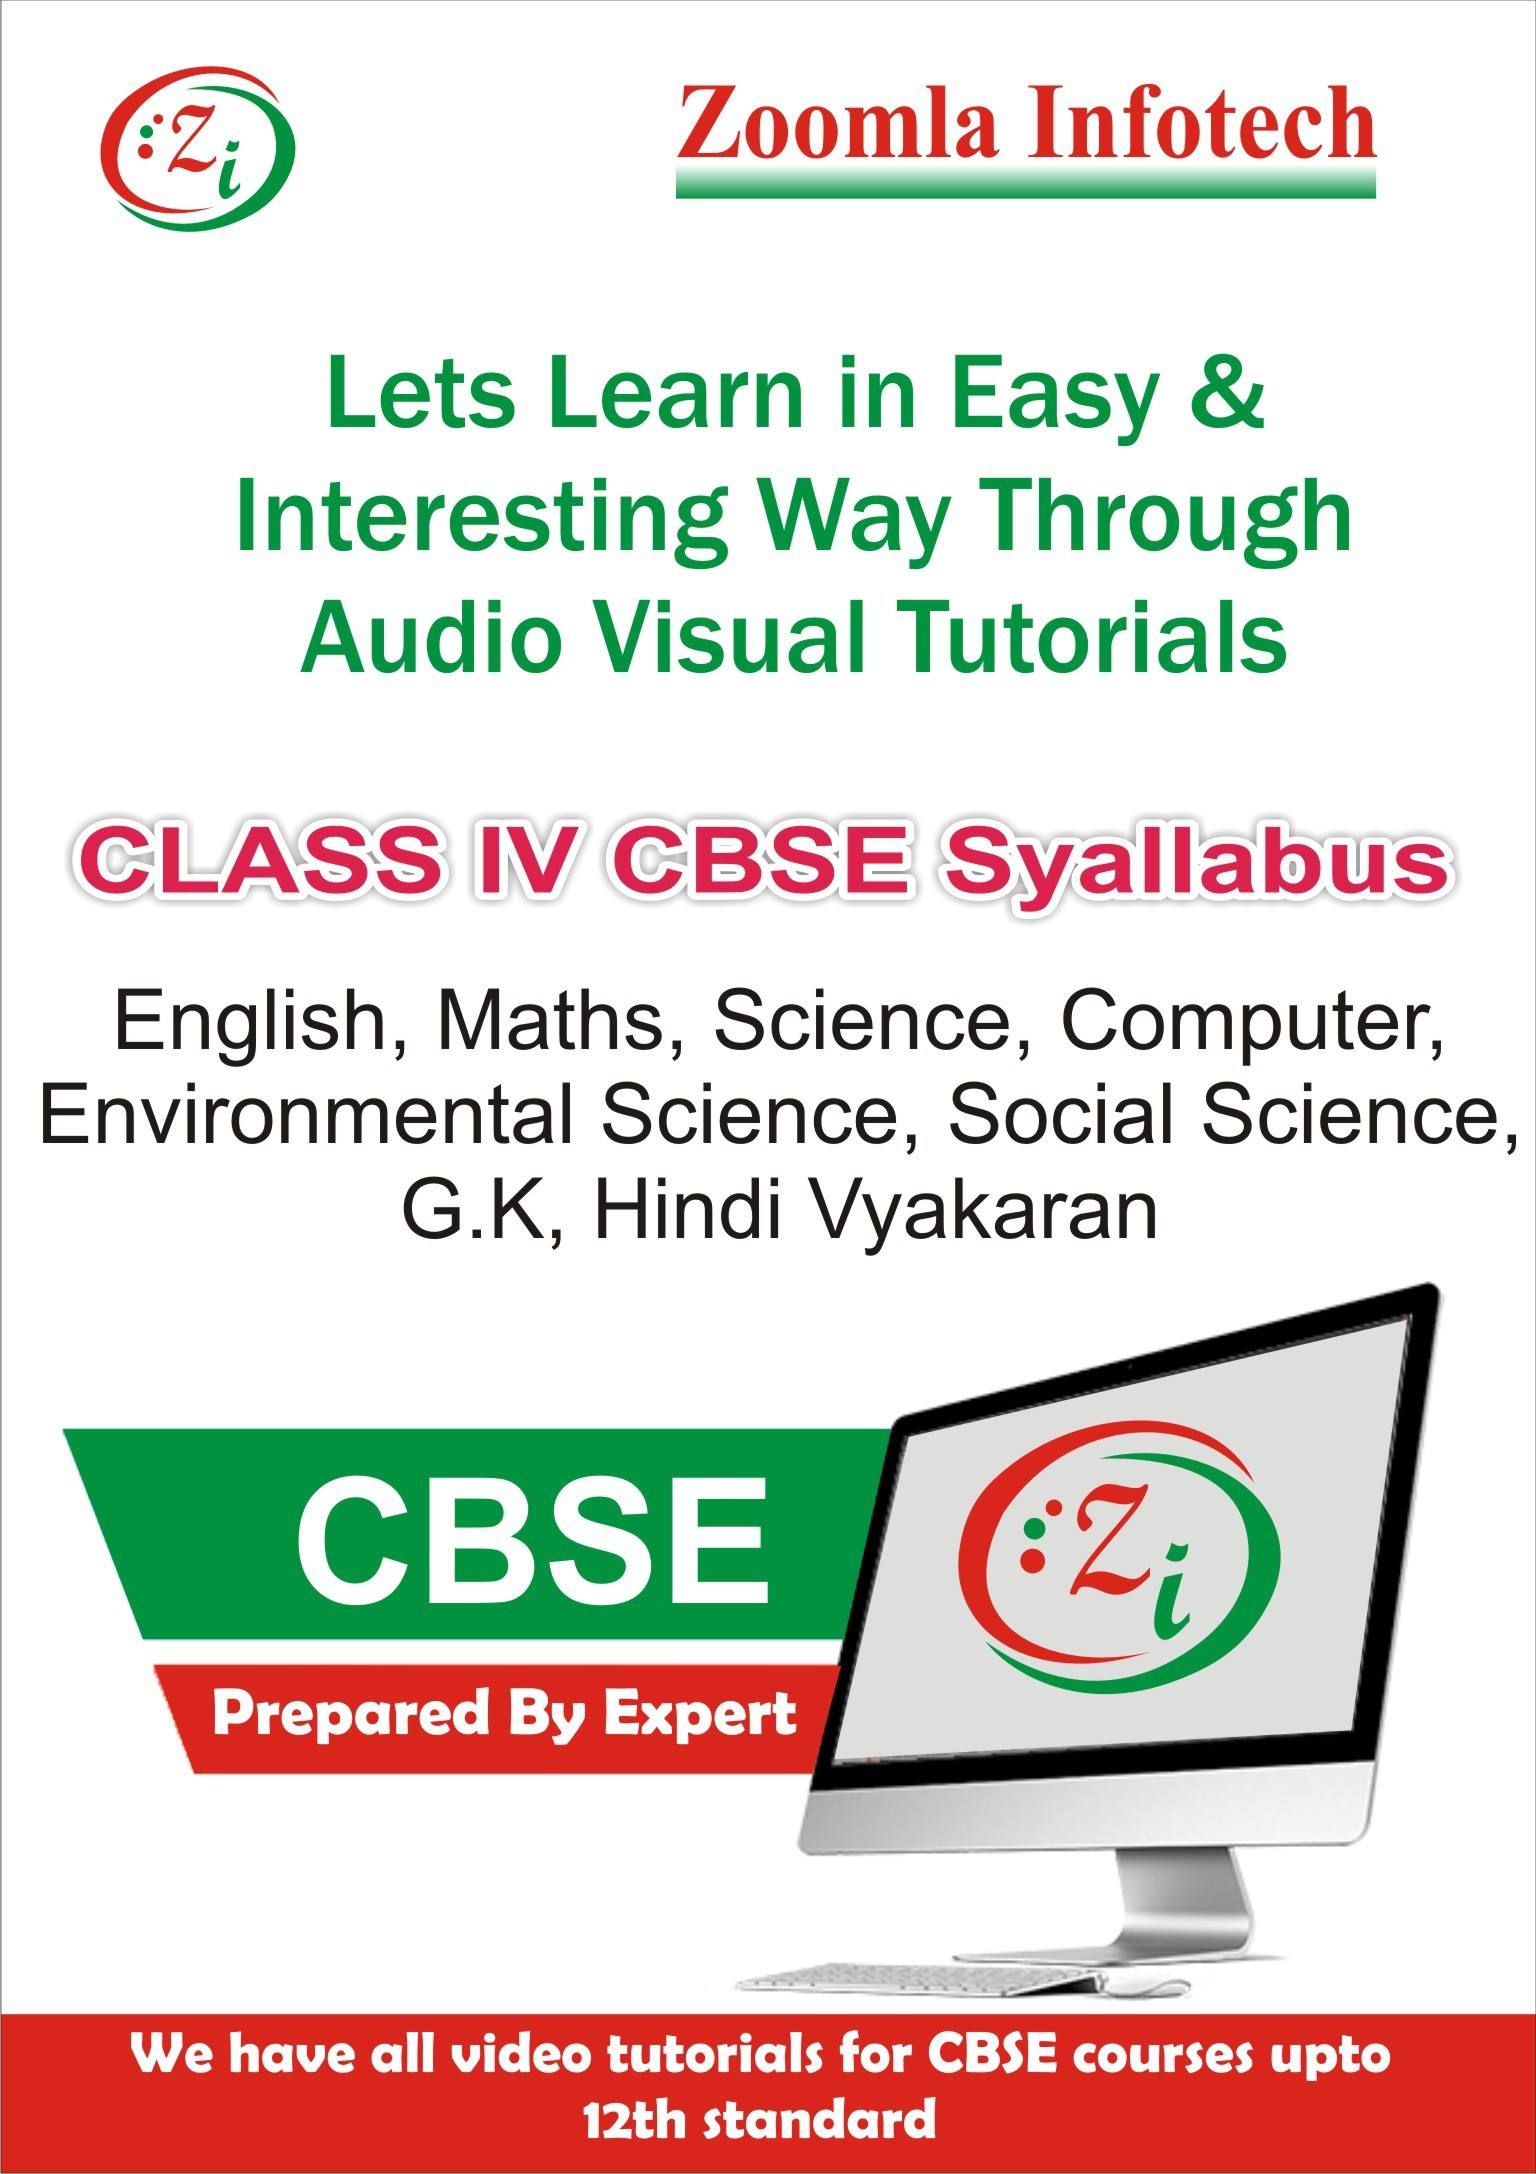 Zoomla Infotech Class 4 CBSE English, Maths, Science, Environmental Science, Social Science, G.k., Hindi Vyakaran, Computer Video Tutorials(DVD)